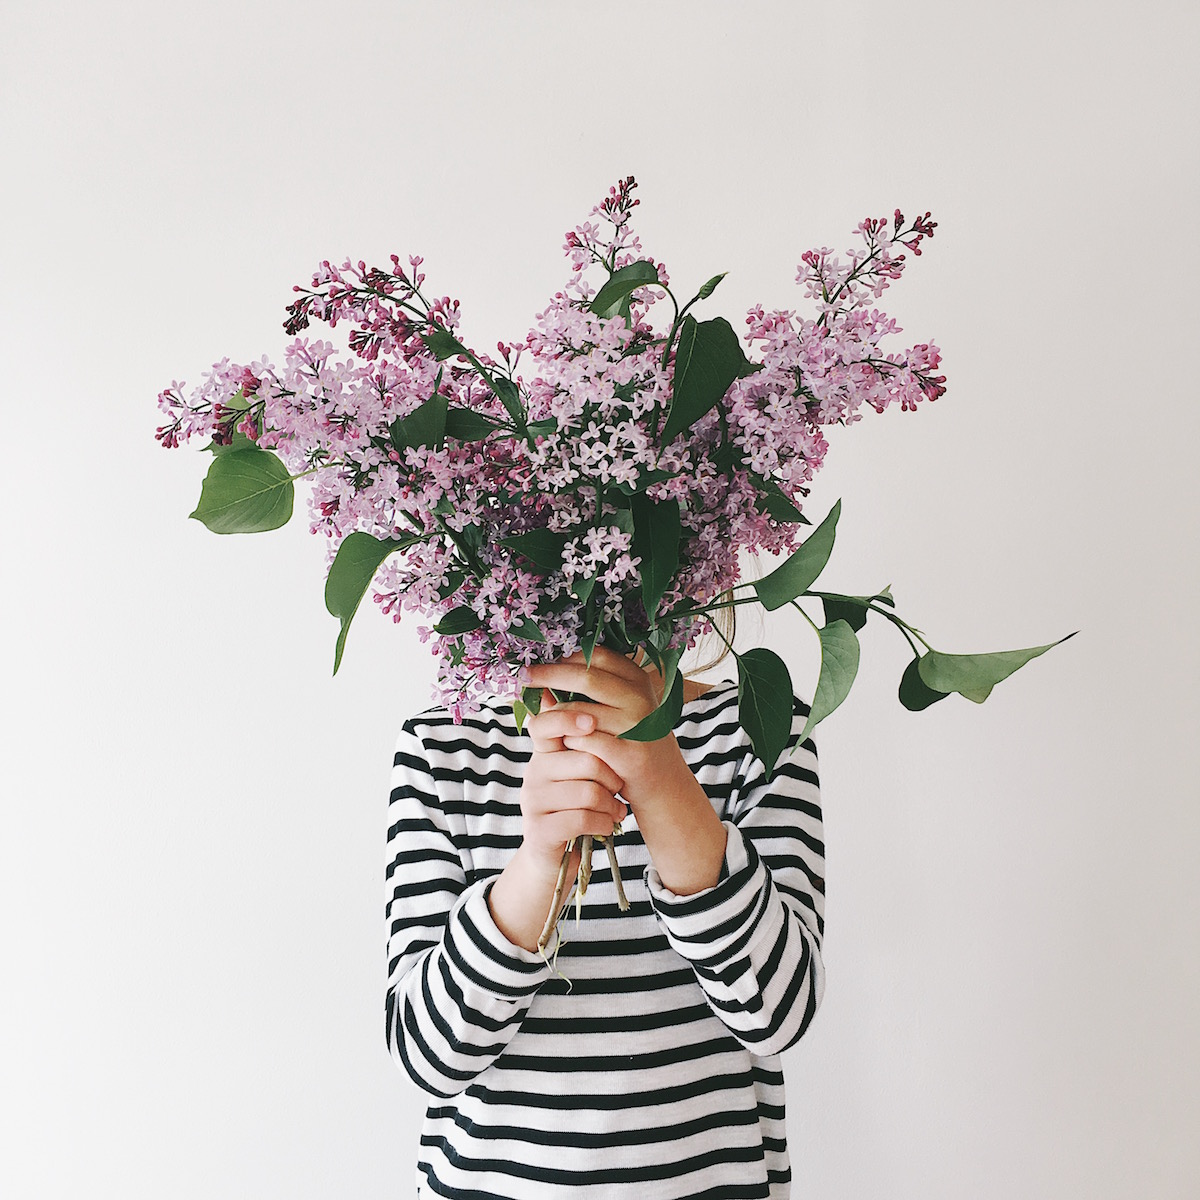 Ideas for Instagram photo props & hashtags -faceless portrait with flowers